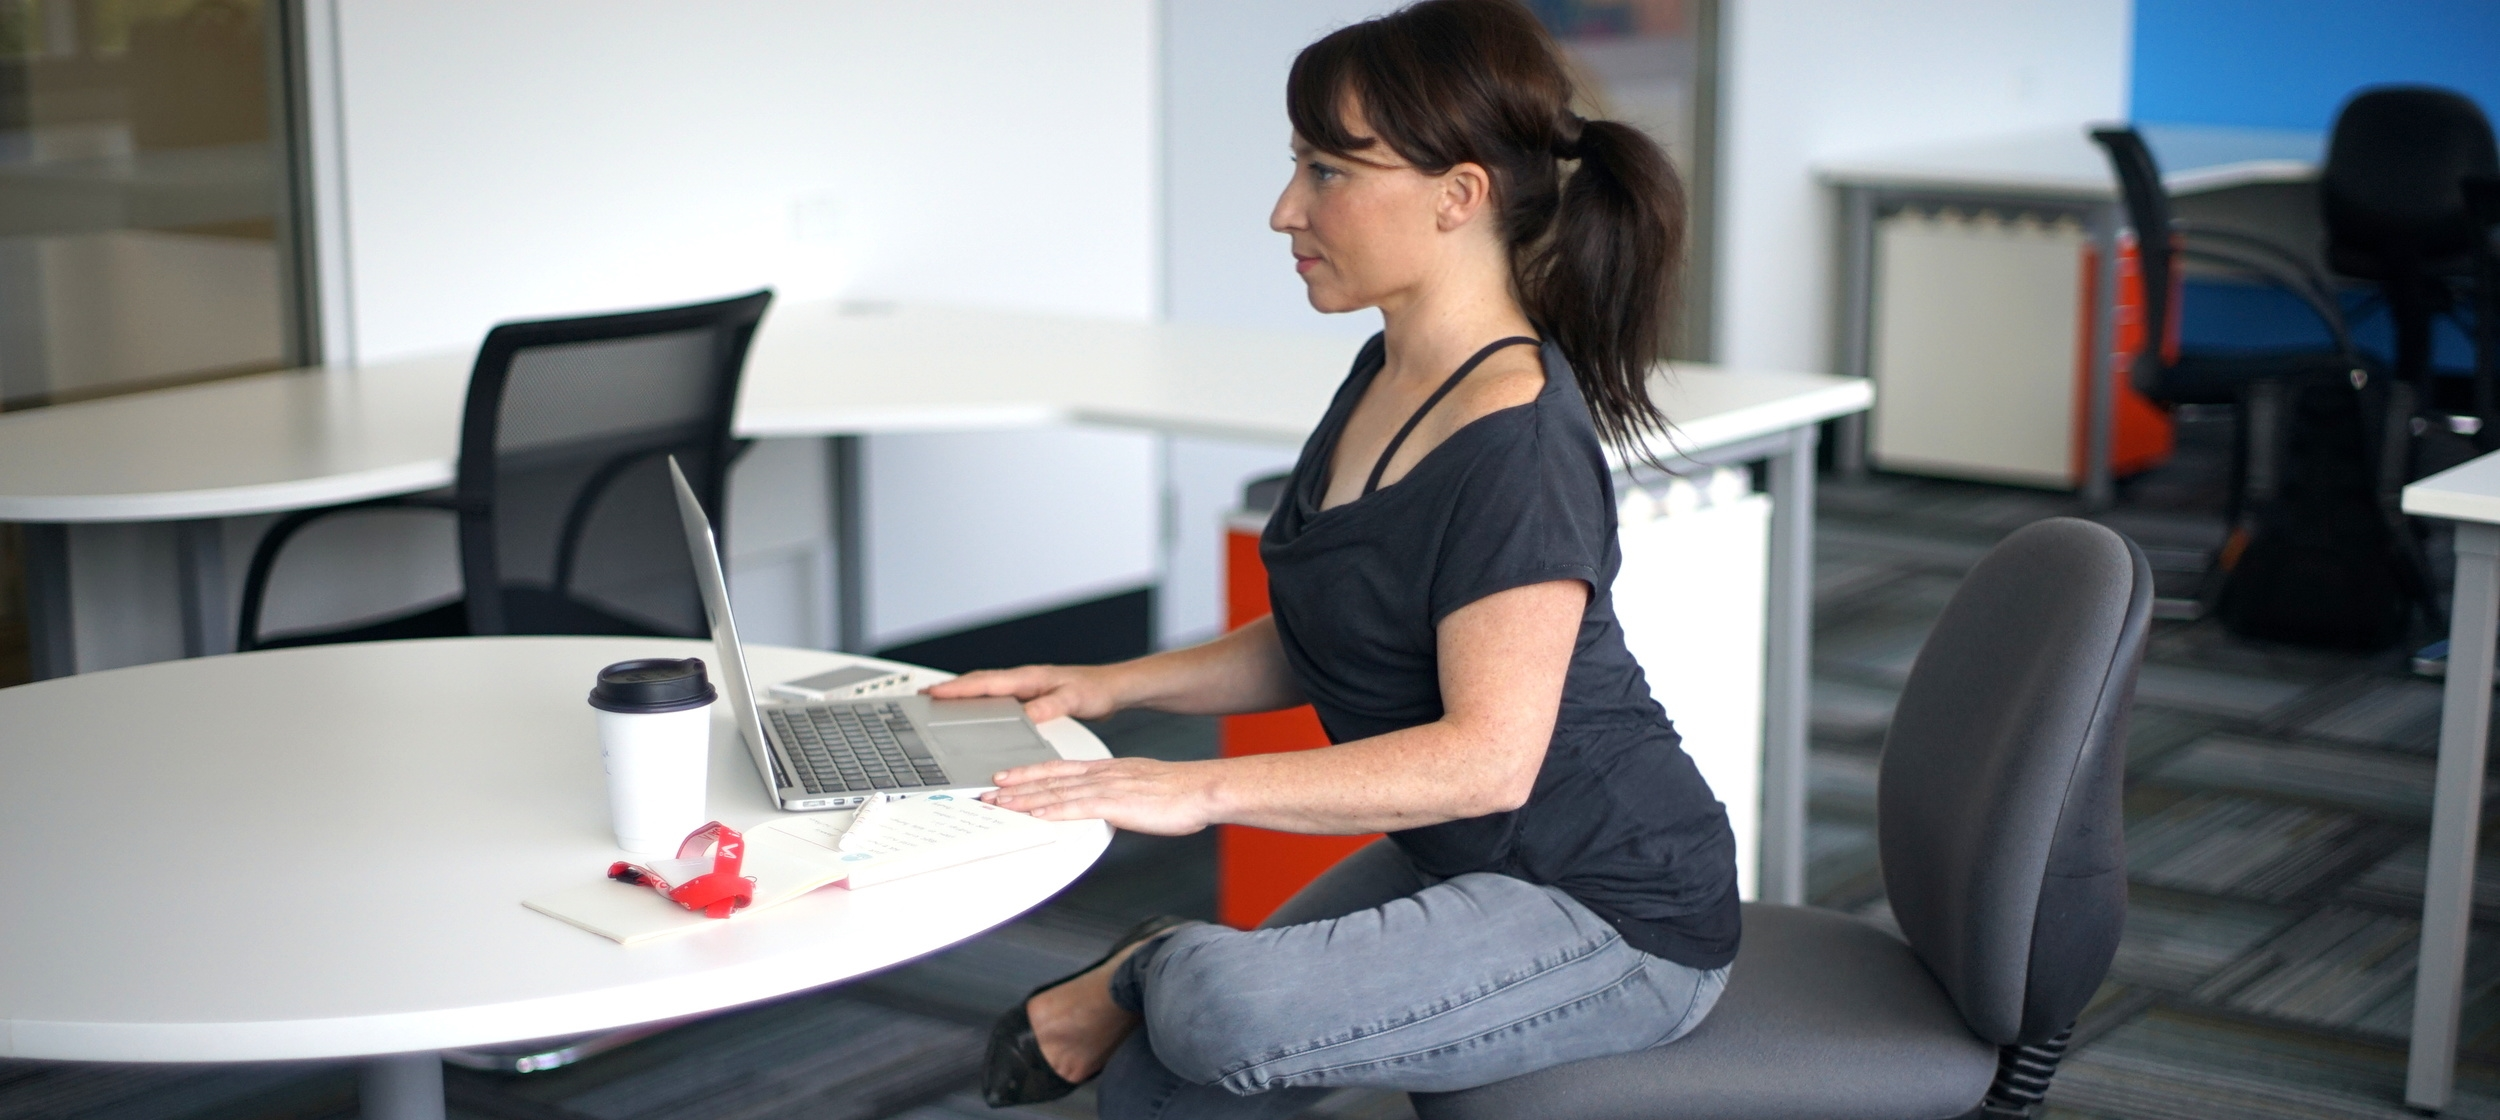 Desk Stretches to Ease Lower Back Pain